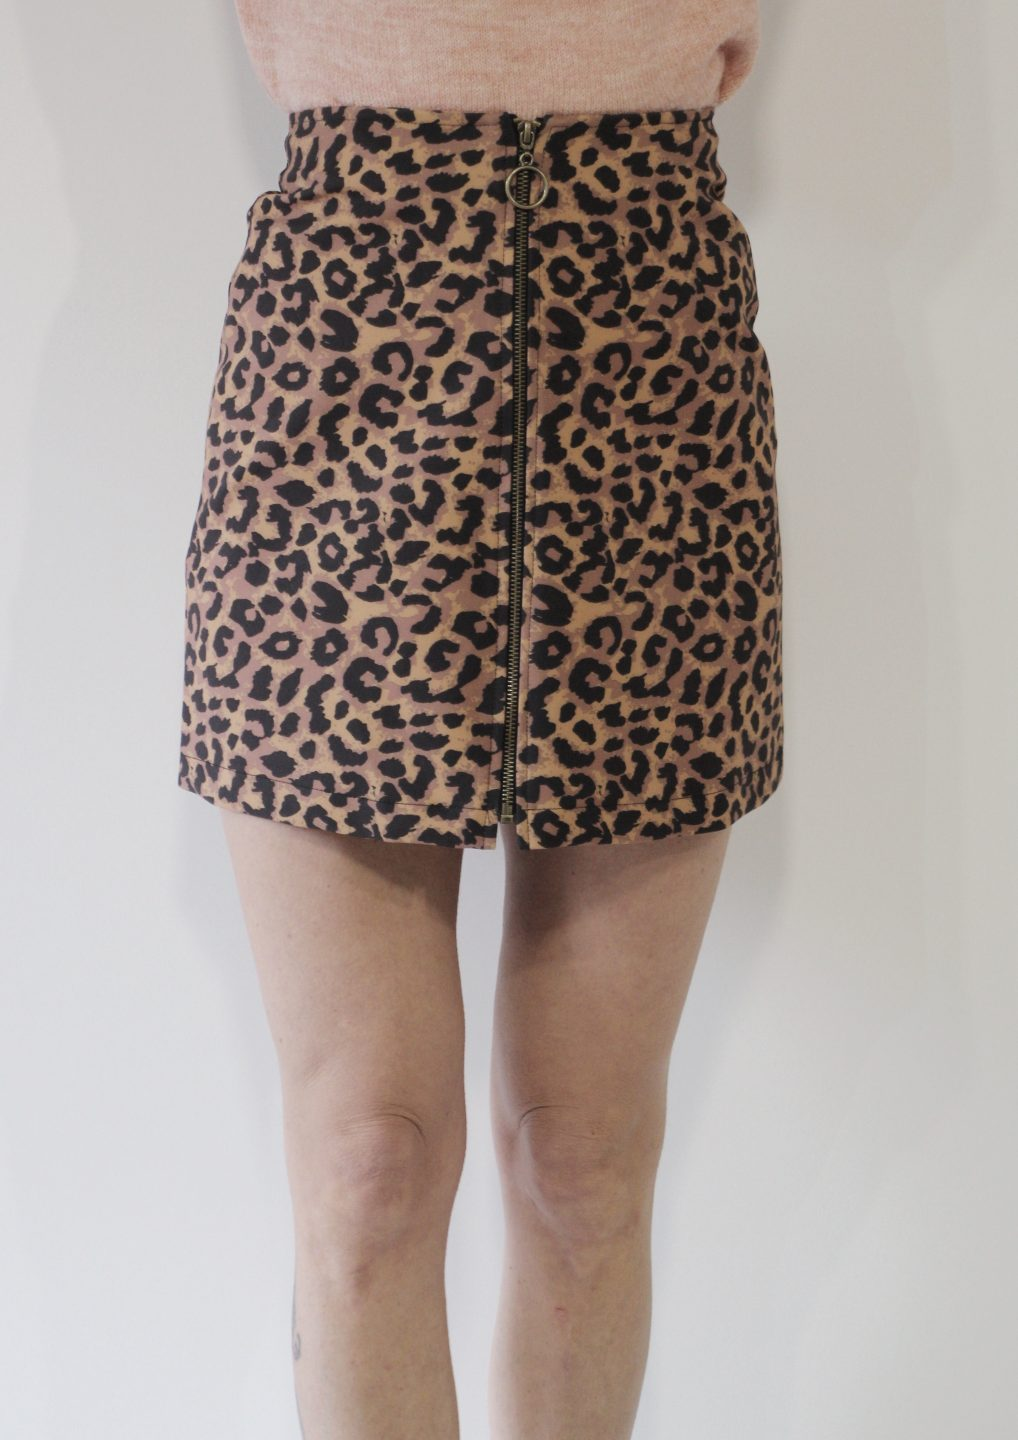 61d51fc37d It s Now Or Never Leopard Skirt - DayDreamers